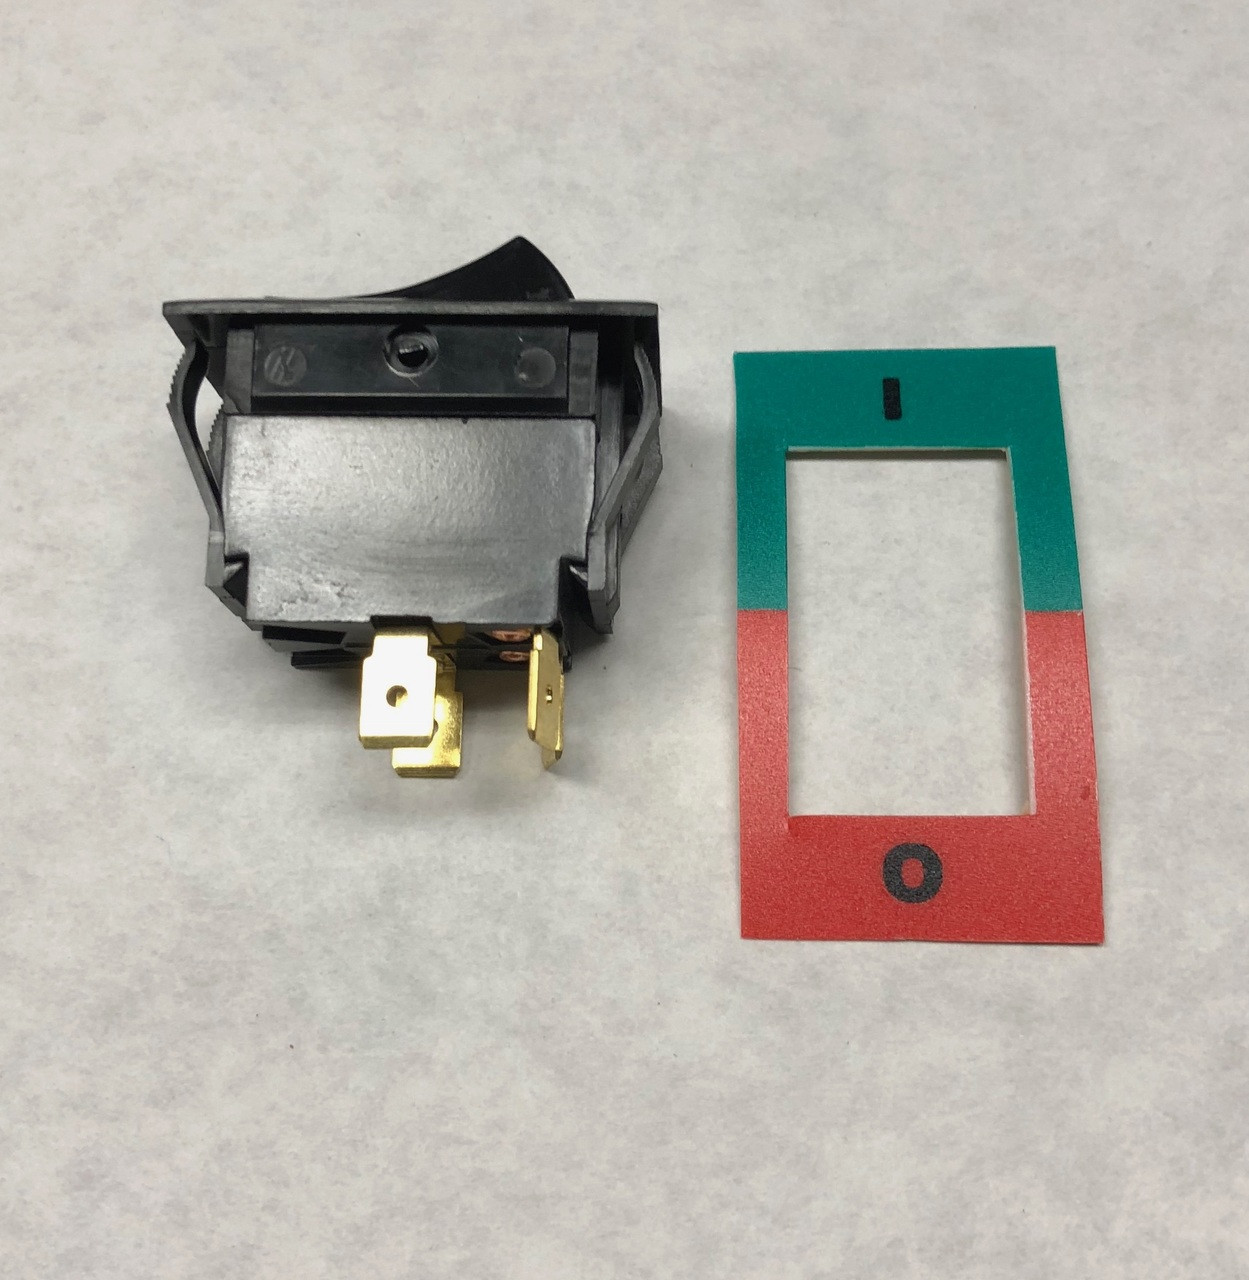 TorRey Model M22-R1 & M22-RW1 Replacement Switch - 05-01802